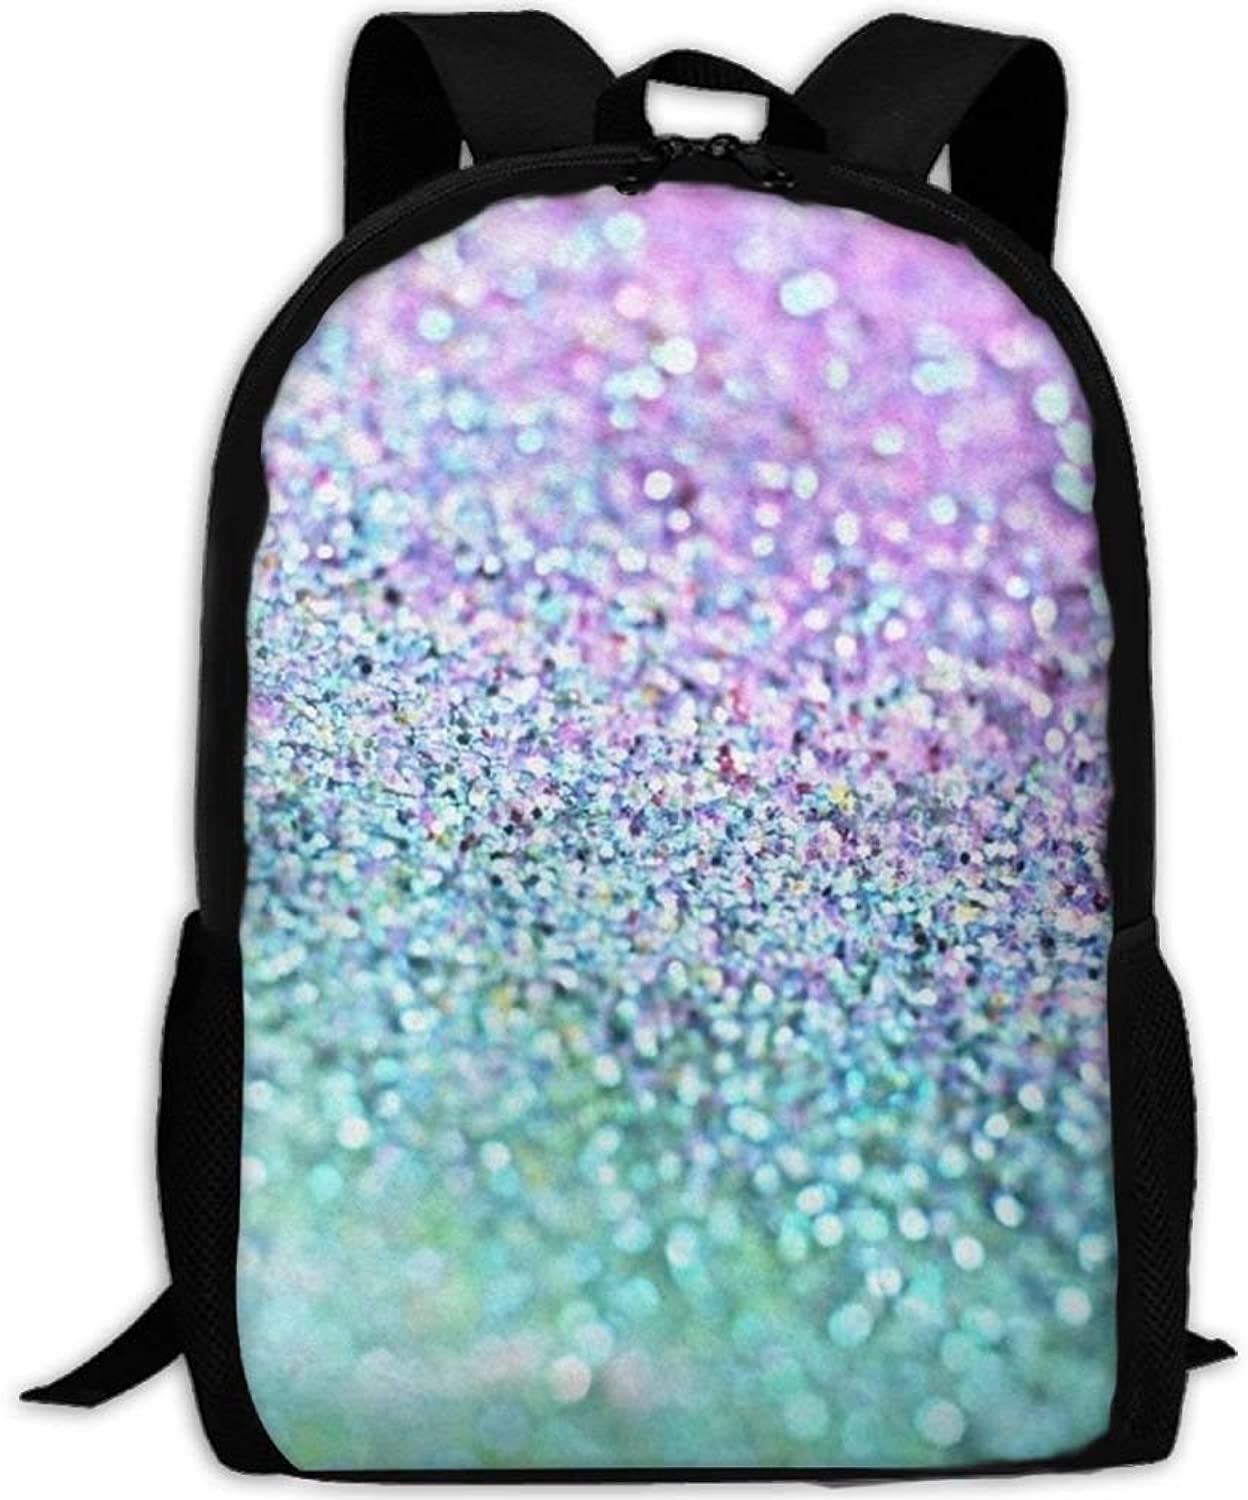 Student Backpack, School Backpack for Laptop,Most Durable Lightweight Cute Travel Water Resistant School Backpack - Little Mermaid B07PV5M4MW  Heißer Verkauf